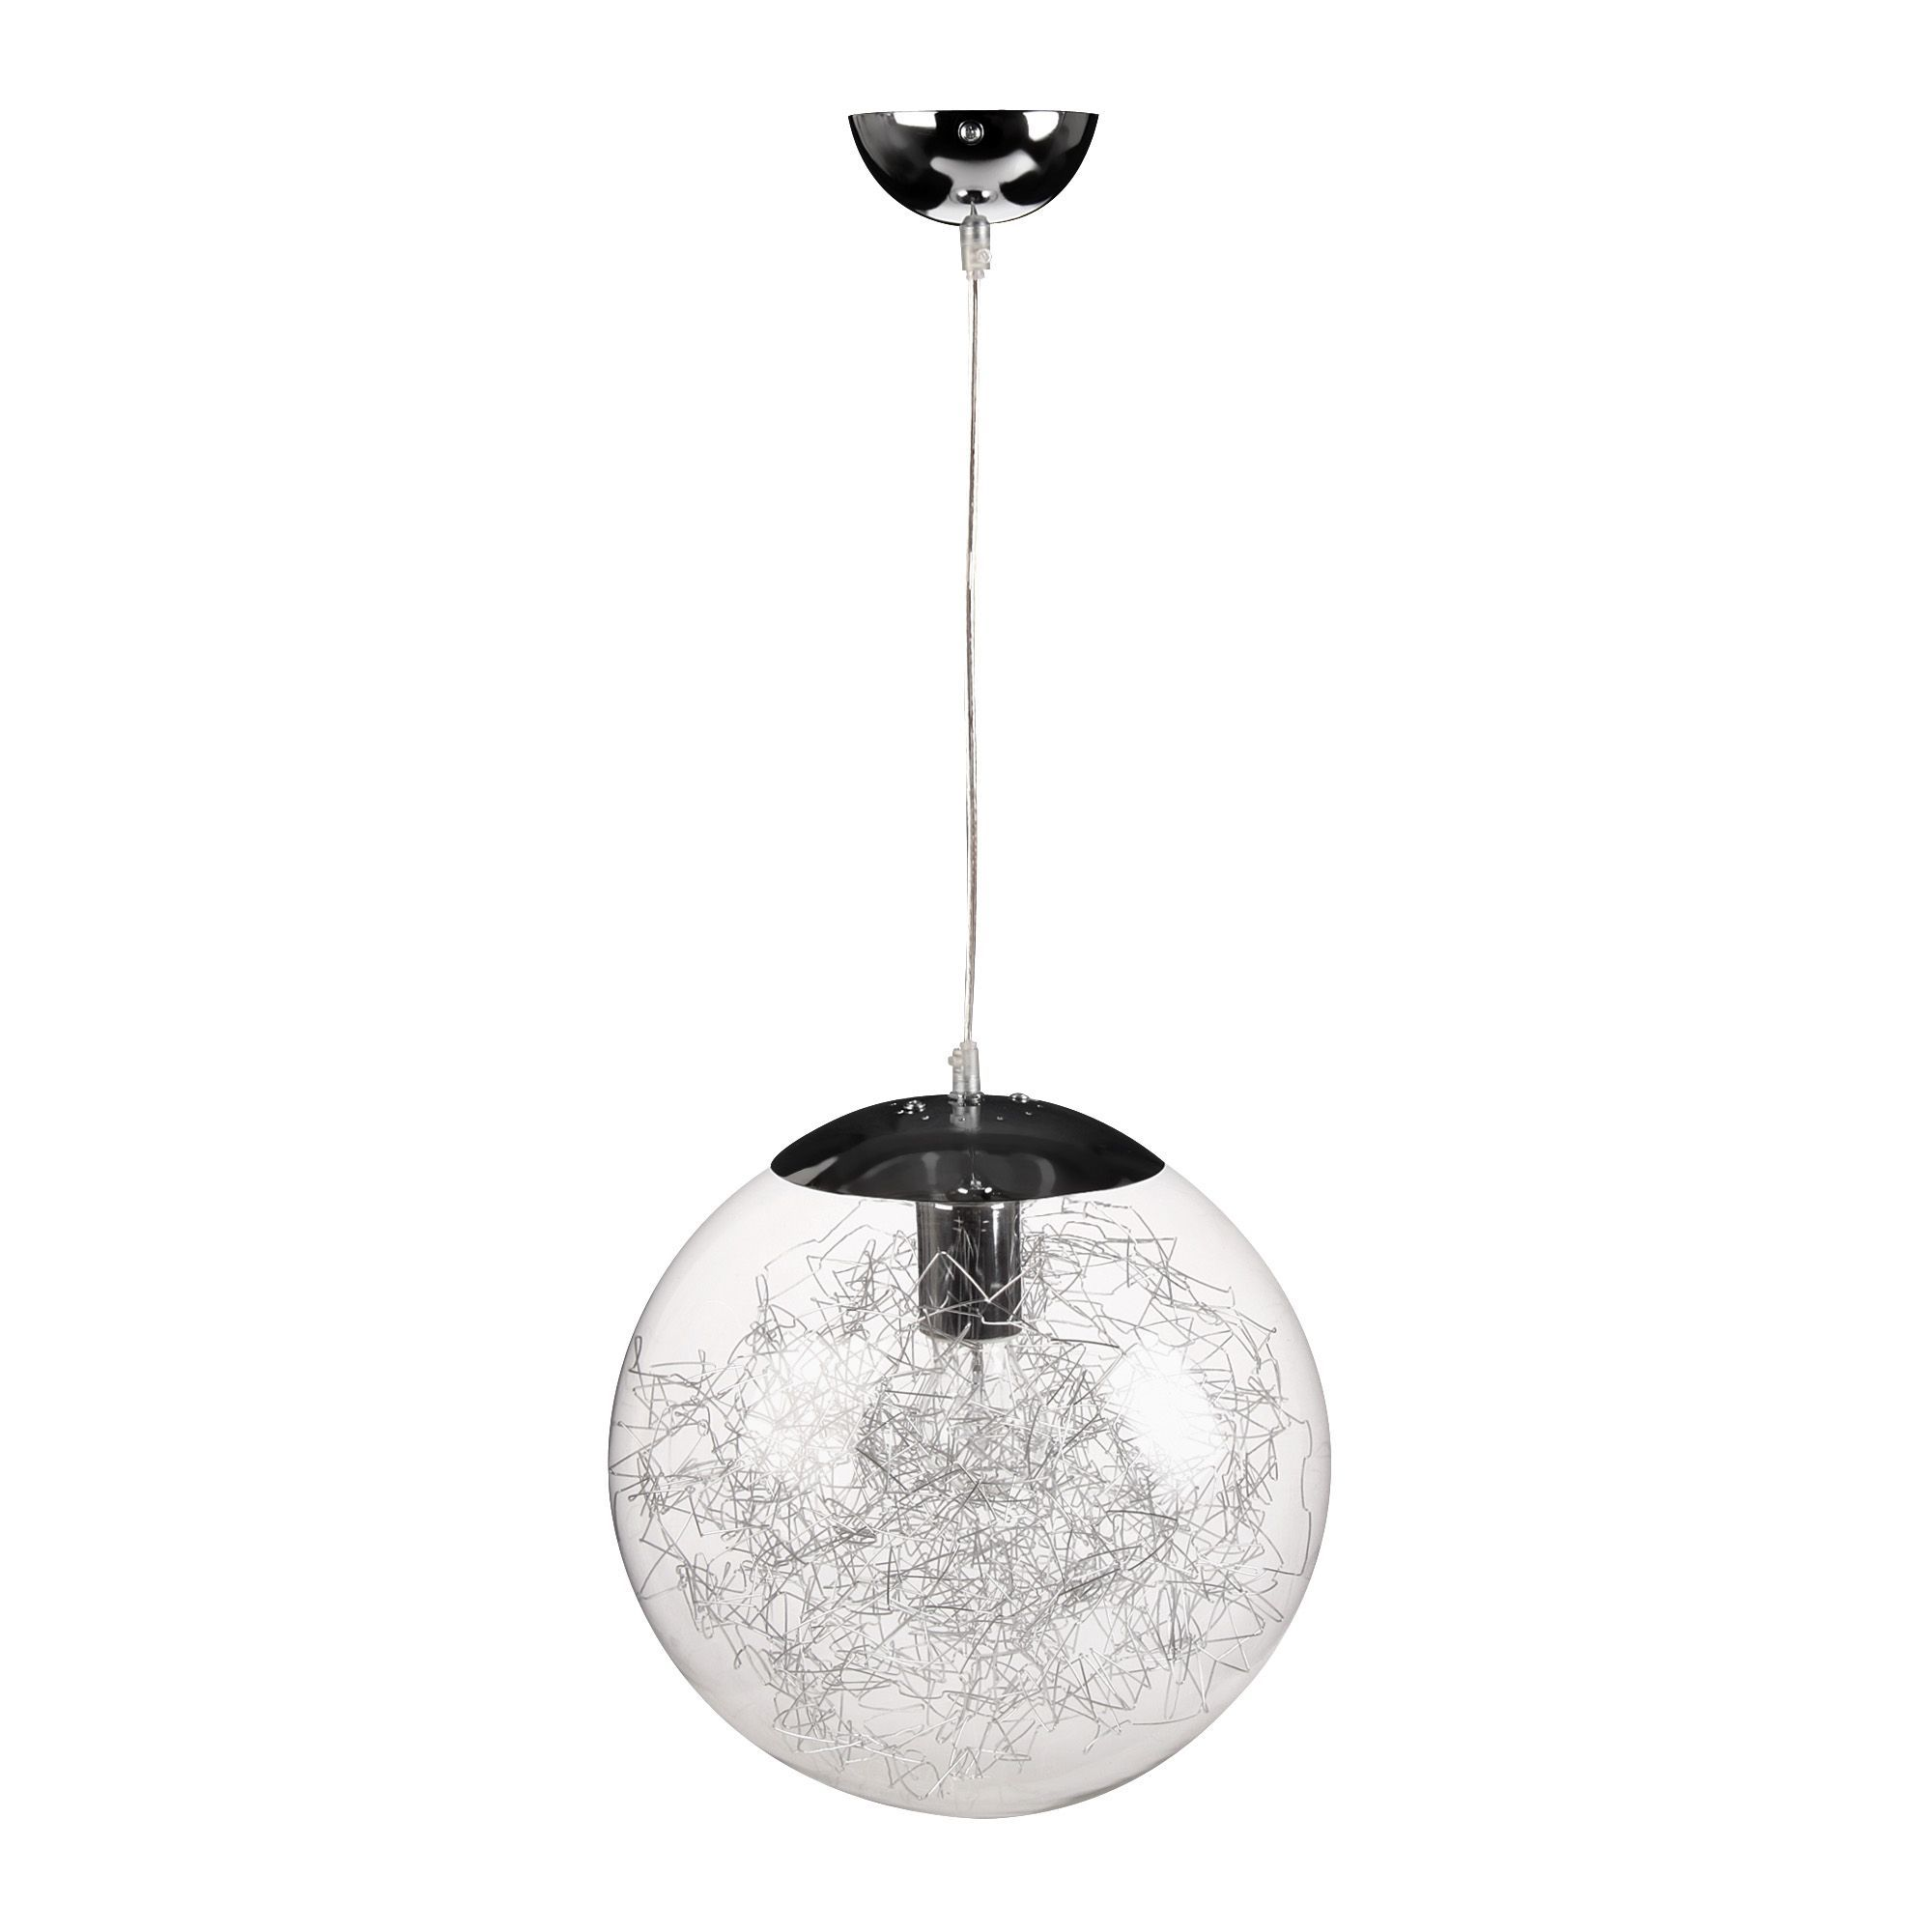 Luminaire Suspension Chambre Suspension Design D30cm Acier Verre Chrome Ball Les